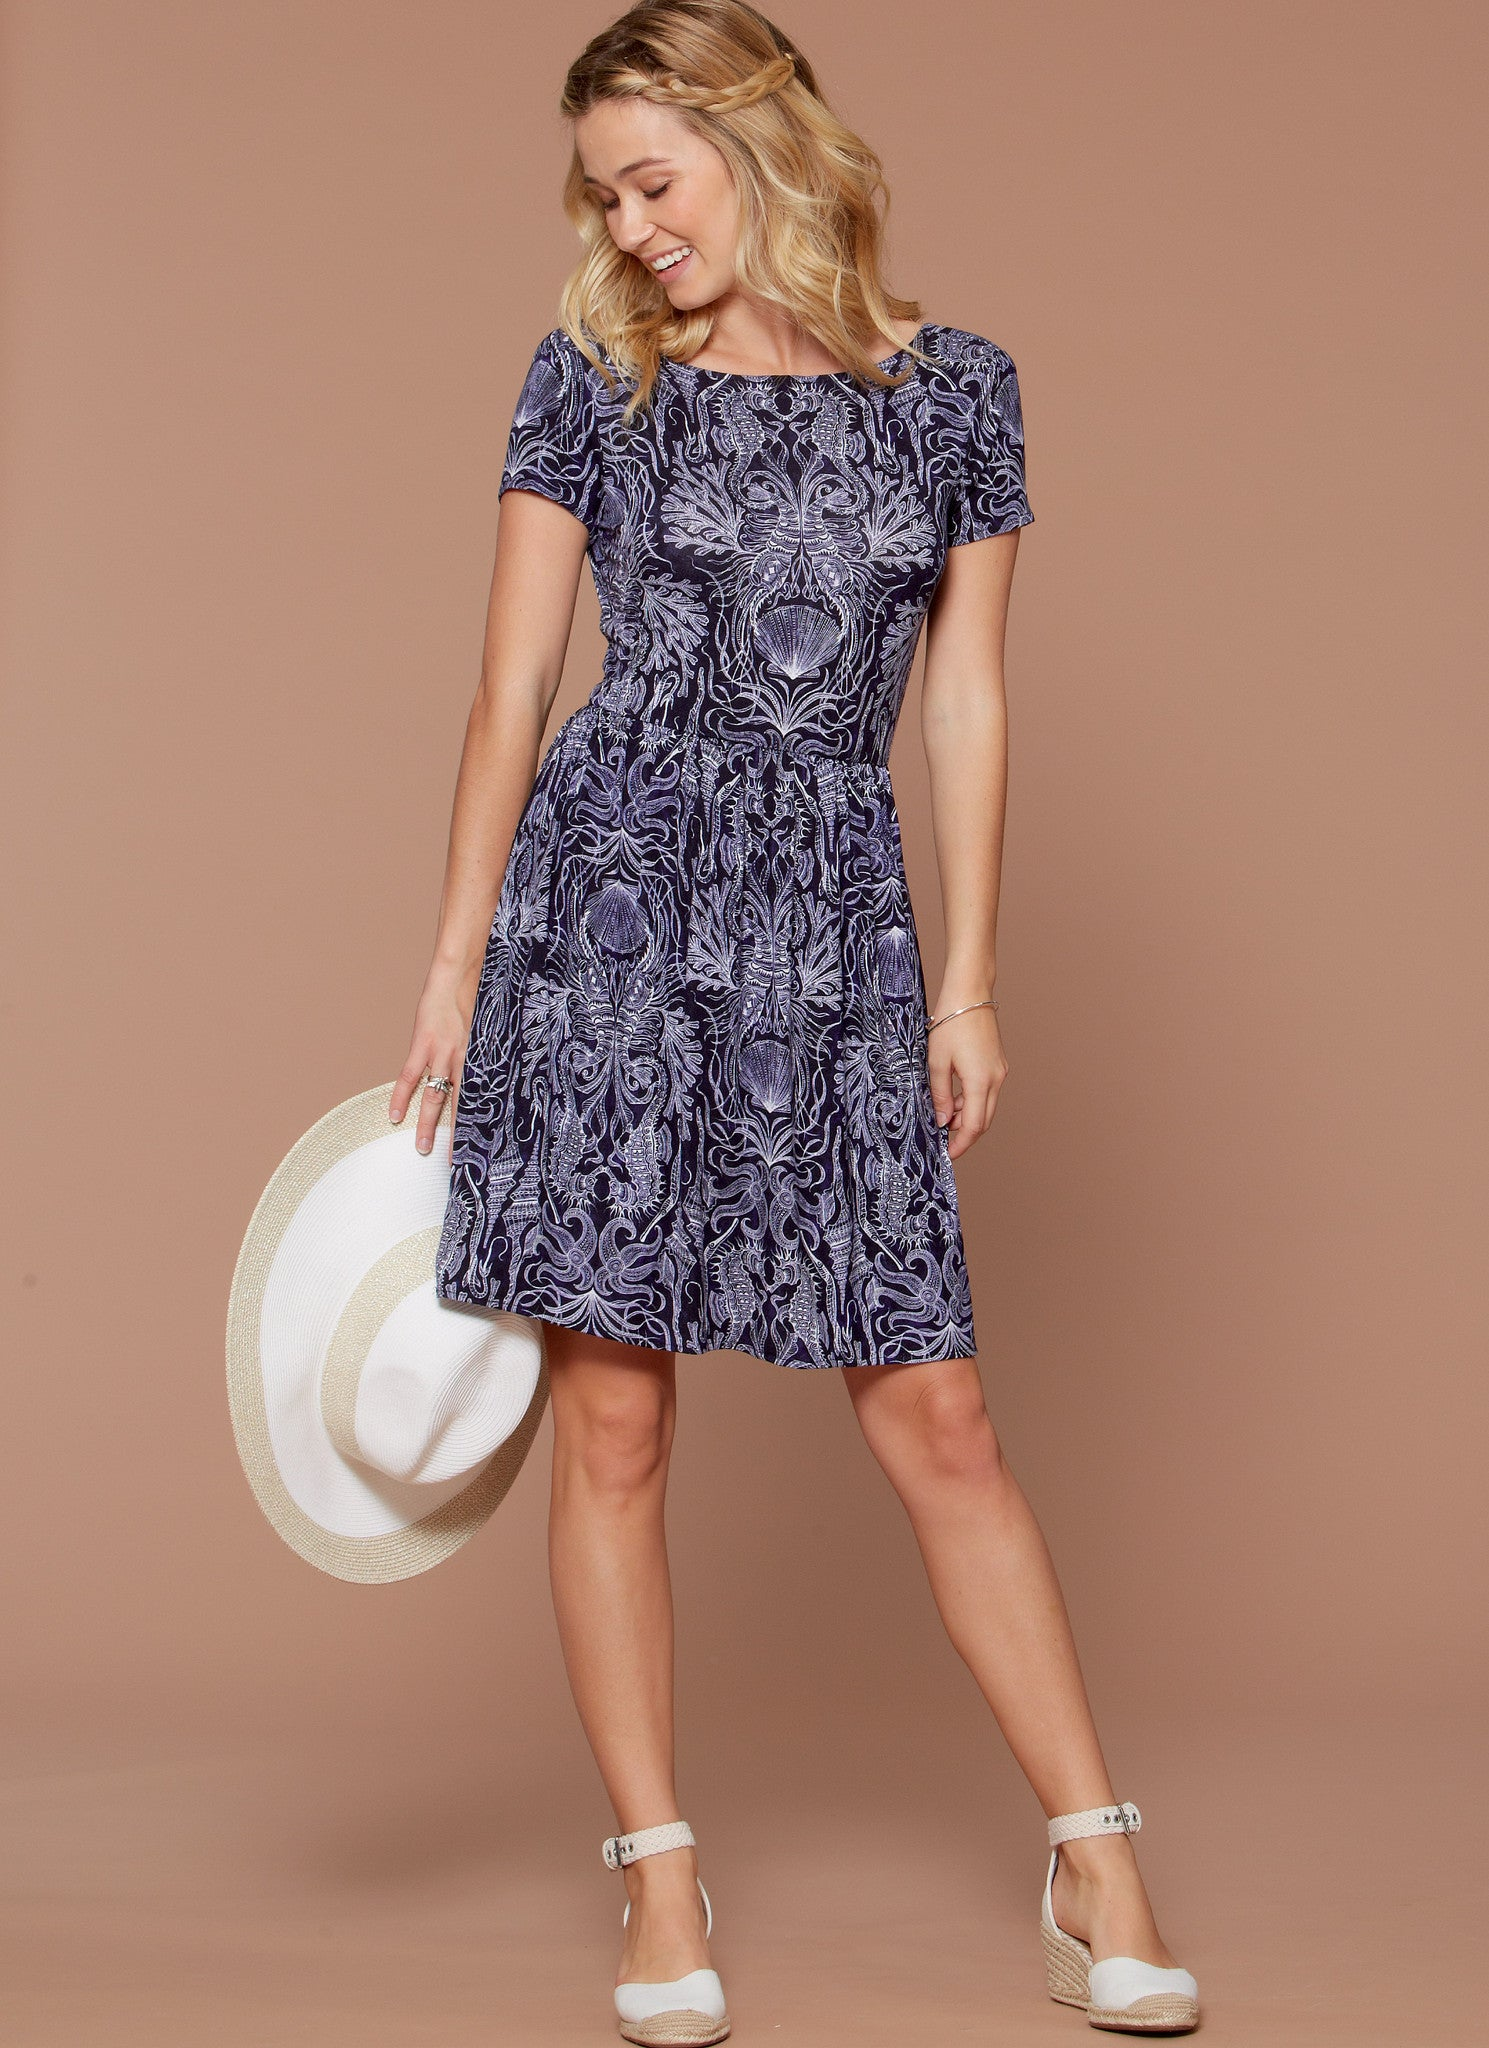 M7561 Misses' Pullover, Gathered-Waist Knit Dresses with Sleeve and Hem Options